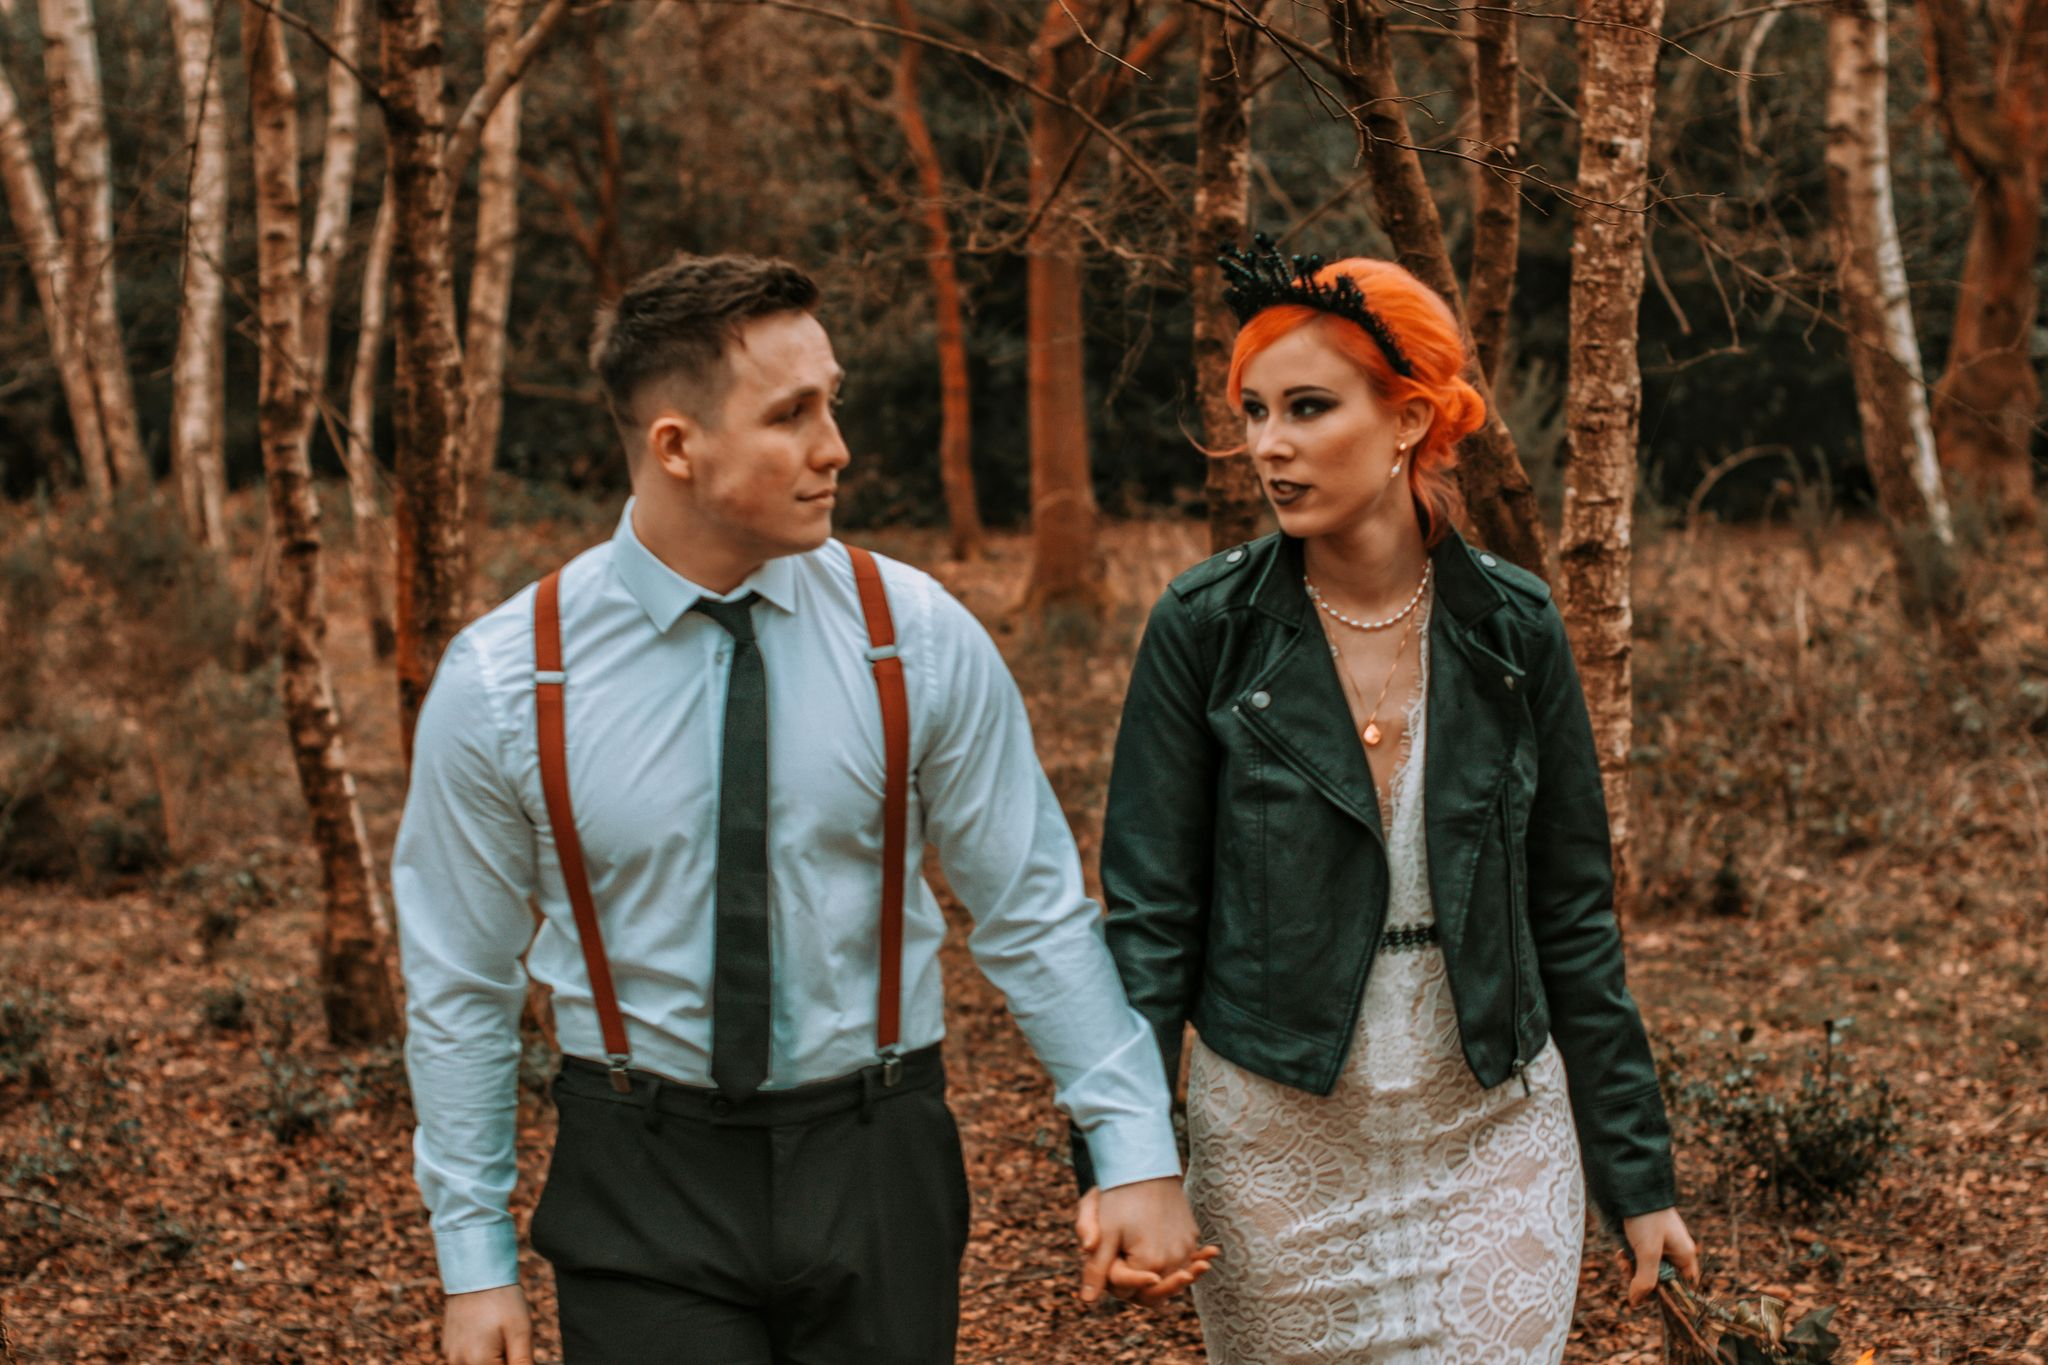 Alternative Forest Wedding - Sammy Leas Retro Emporium -Photography By Wills- alternative wedding - unconventional wedding- edgy woodland wedding